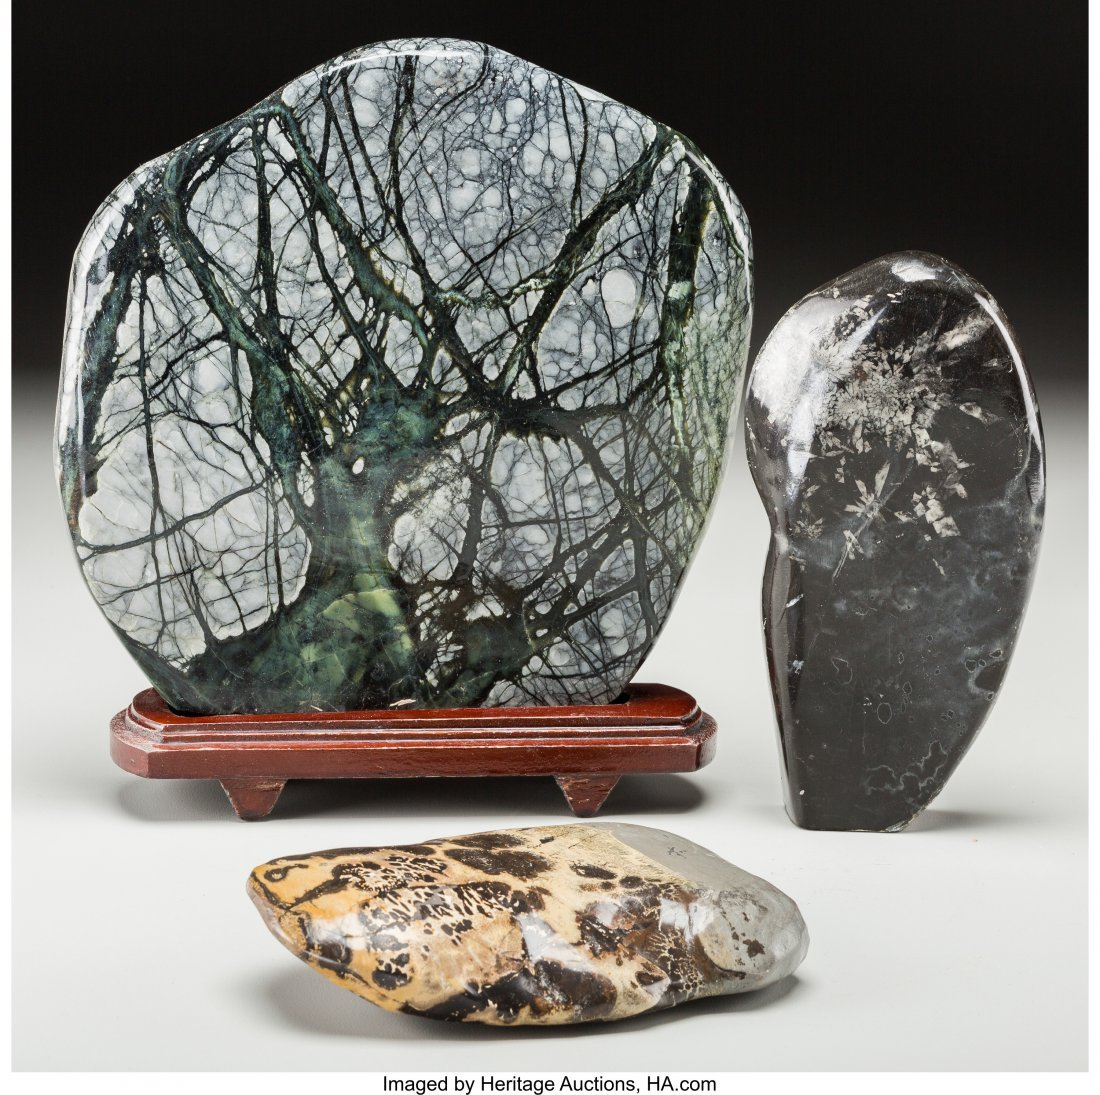 63726: A Group of Three Chinese Scholar's Rocks 9-1/4 i